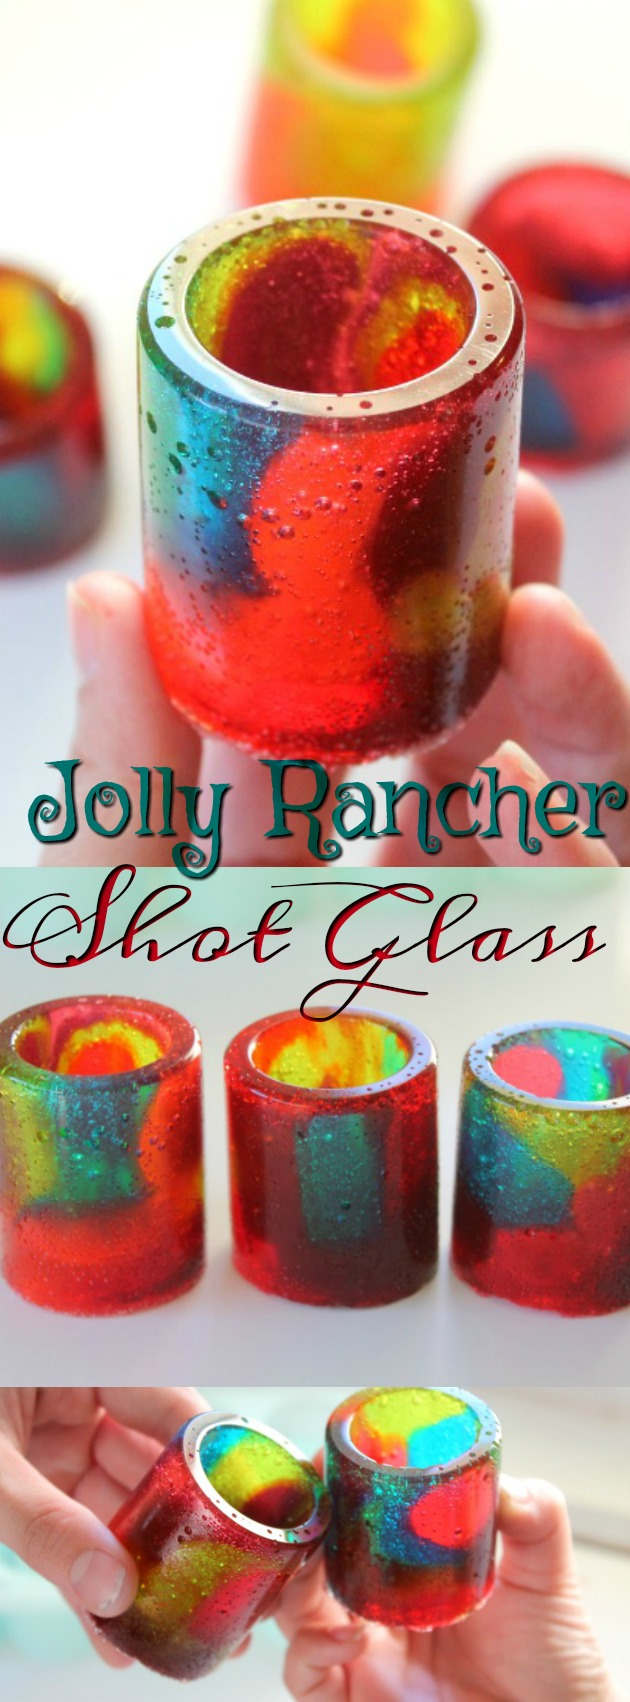 How To Make Jolly Rancher Shot Glasses